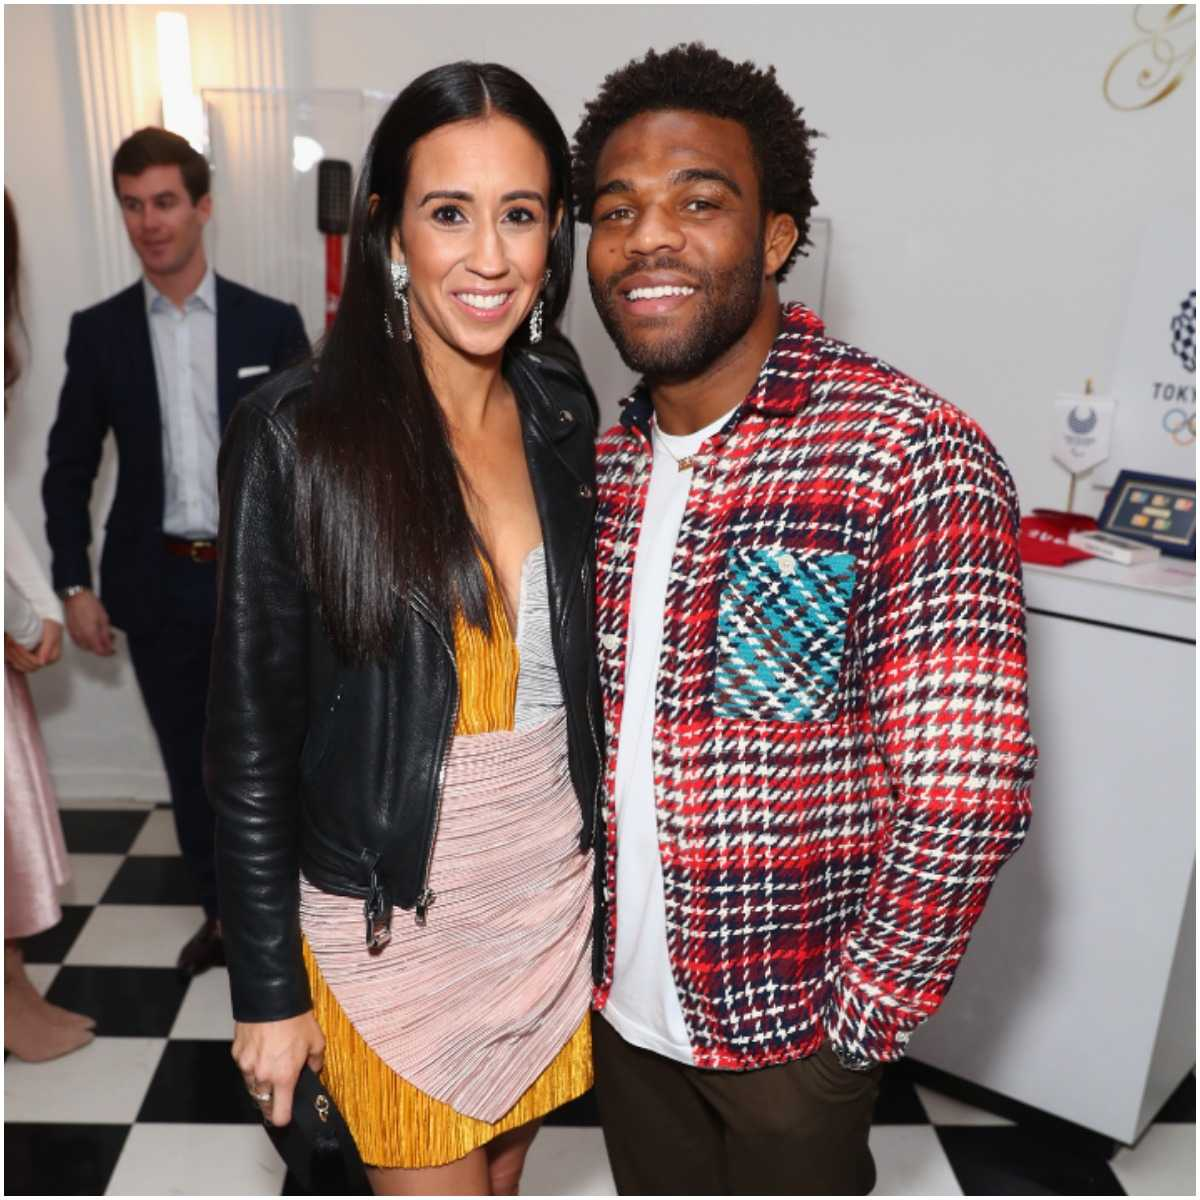 Jordan Burroughs and his wife Lauren Mariacher